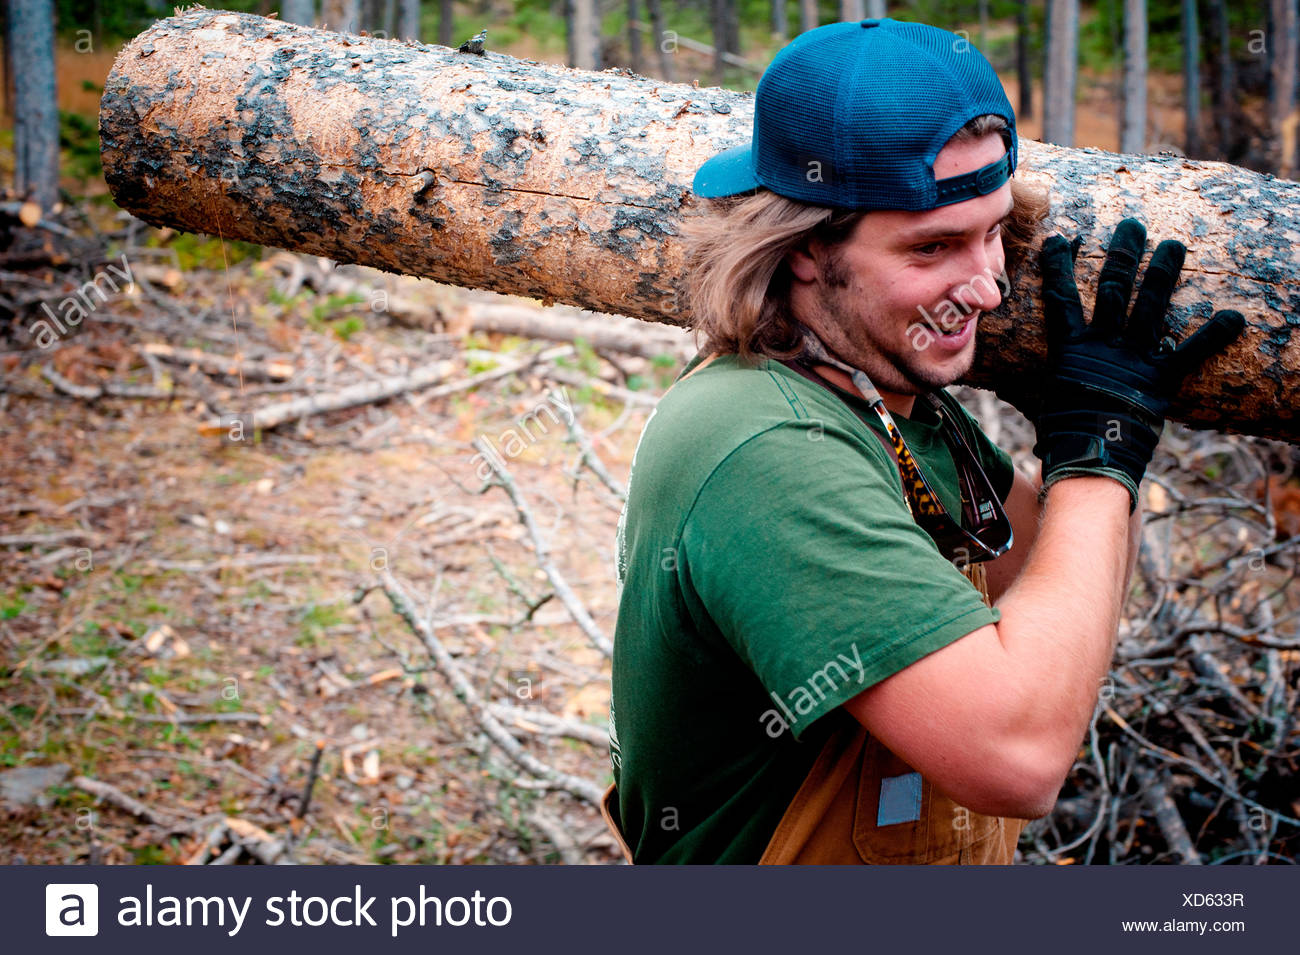 A Montana man carries a large log in the woods. - Stock Image